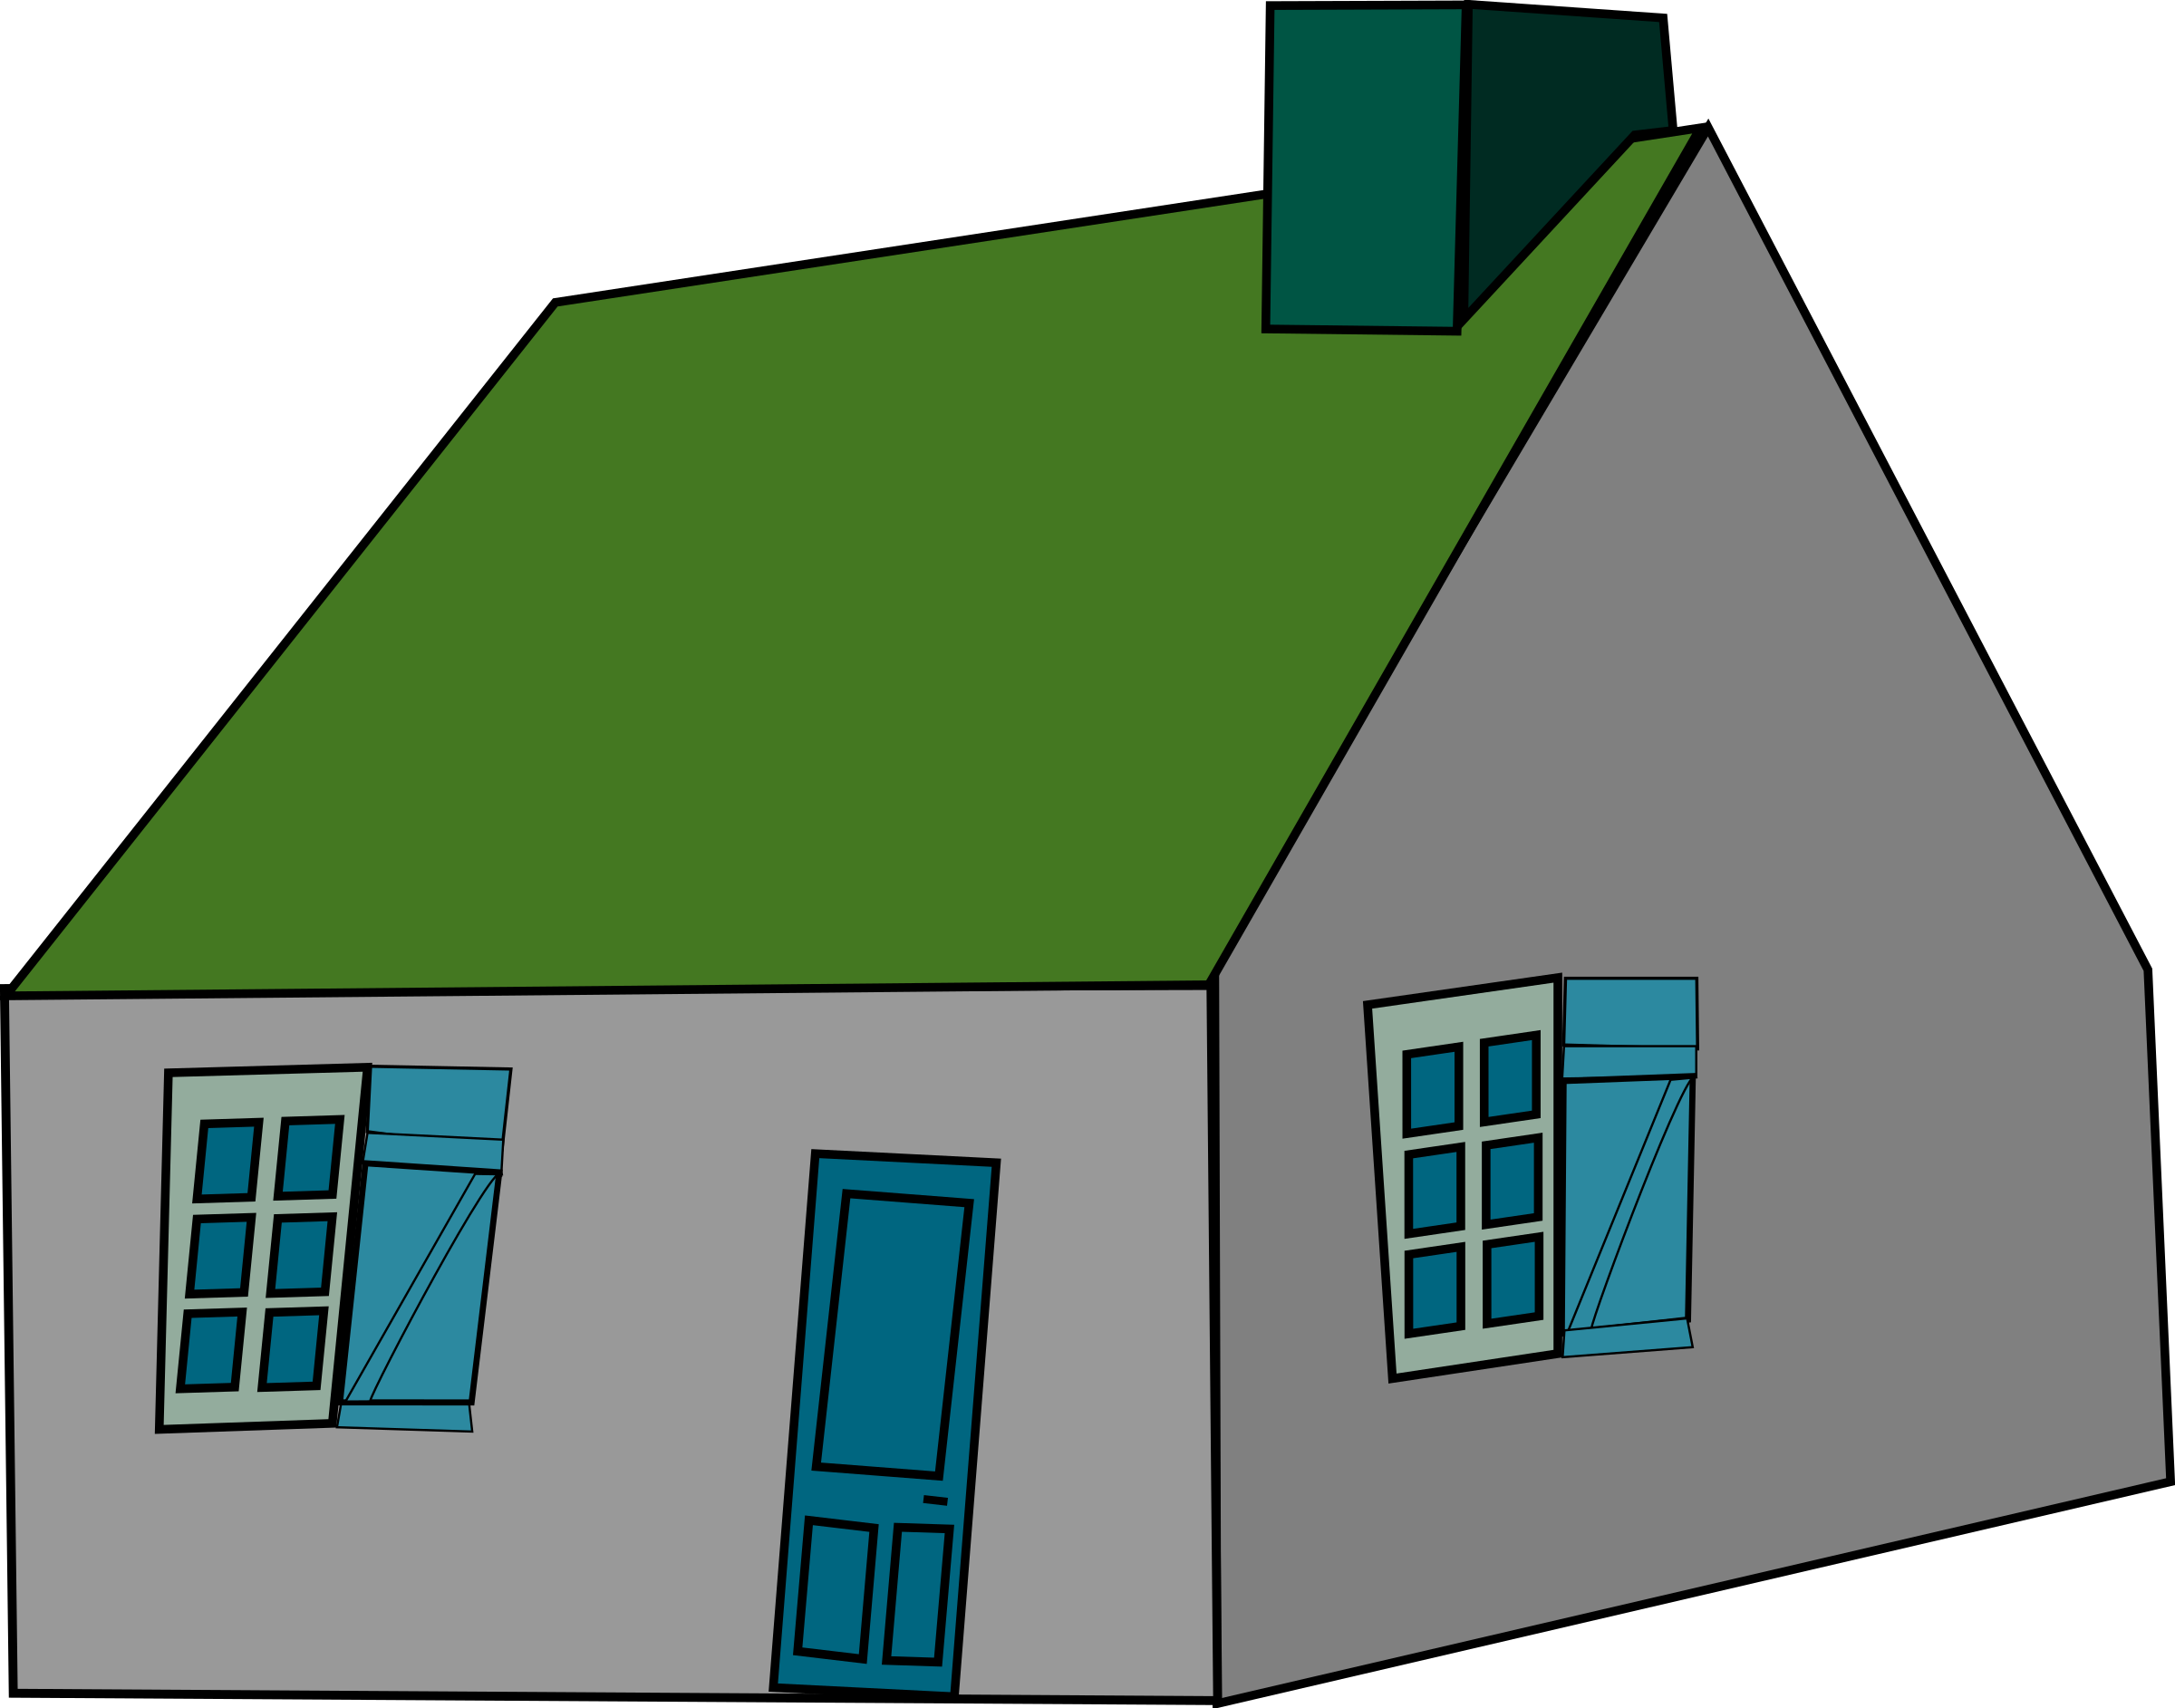 Animated house clipart banner free  banner free